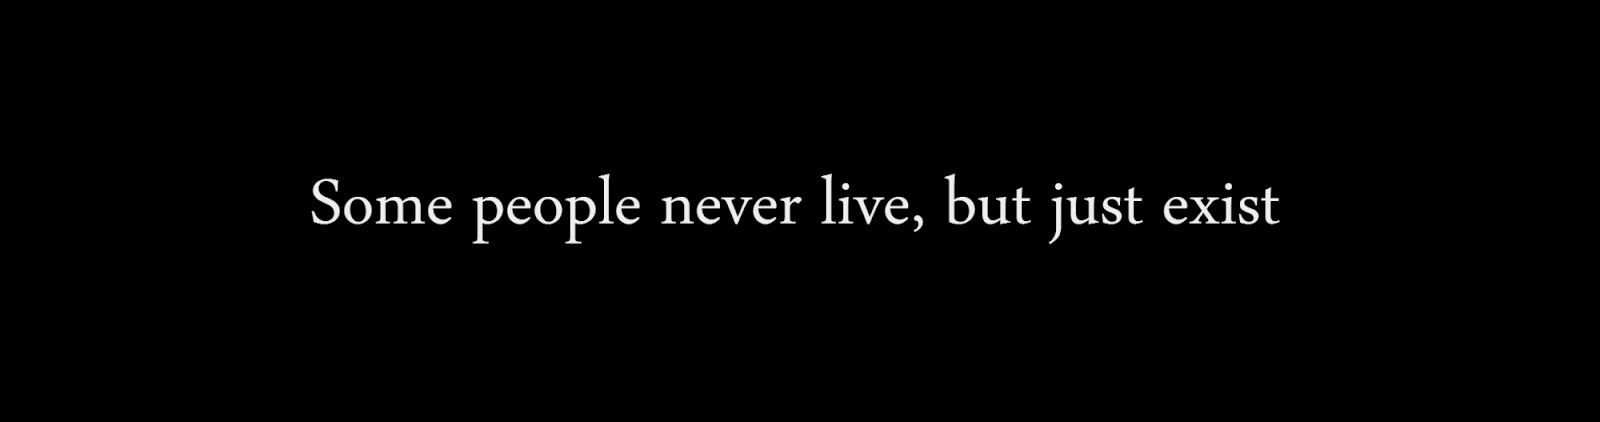 Some people never live, but just exist